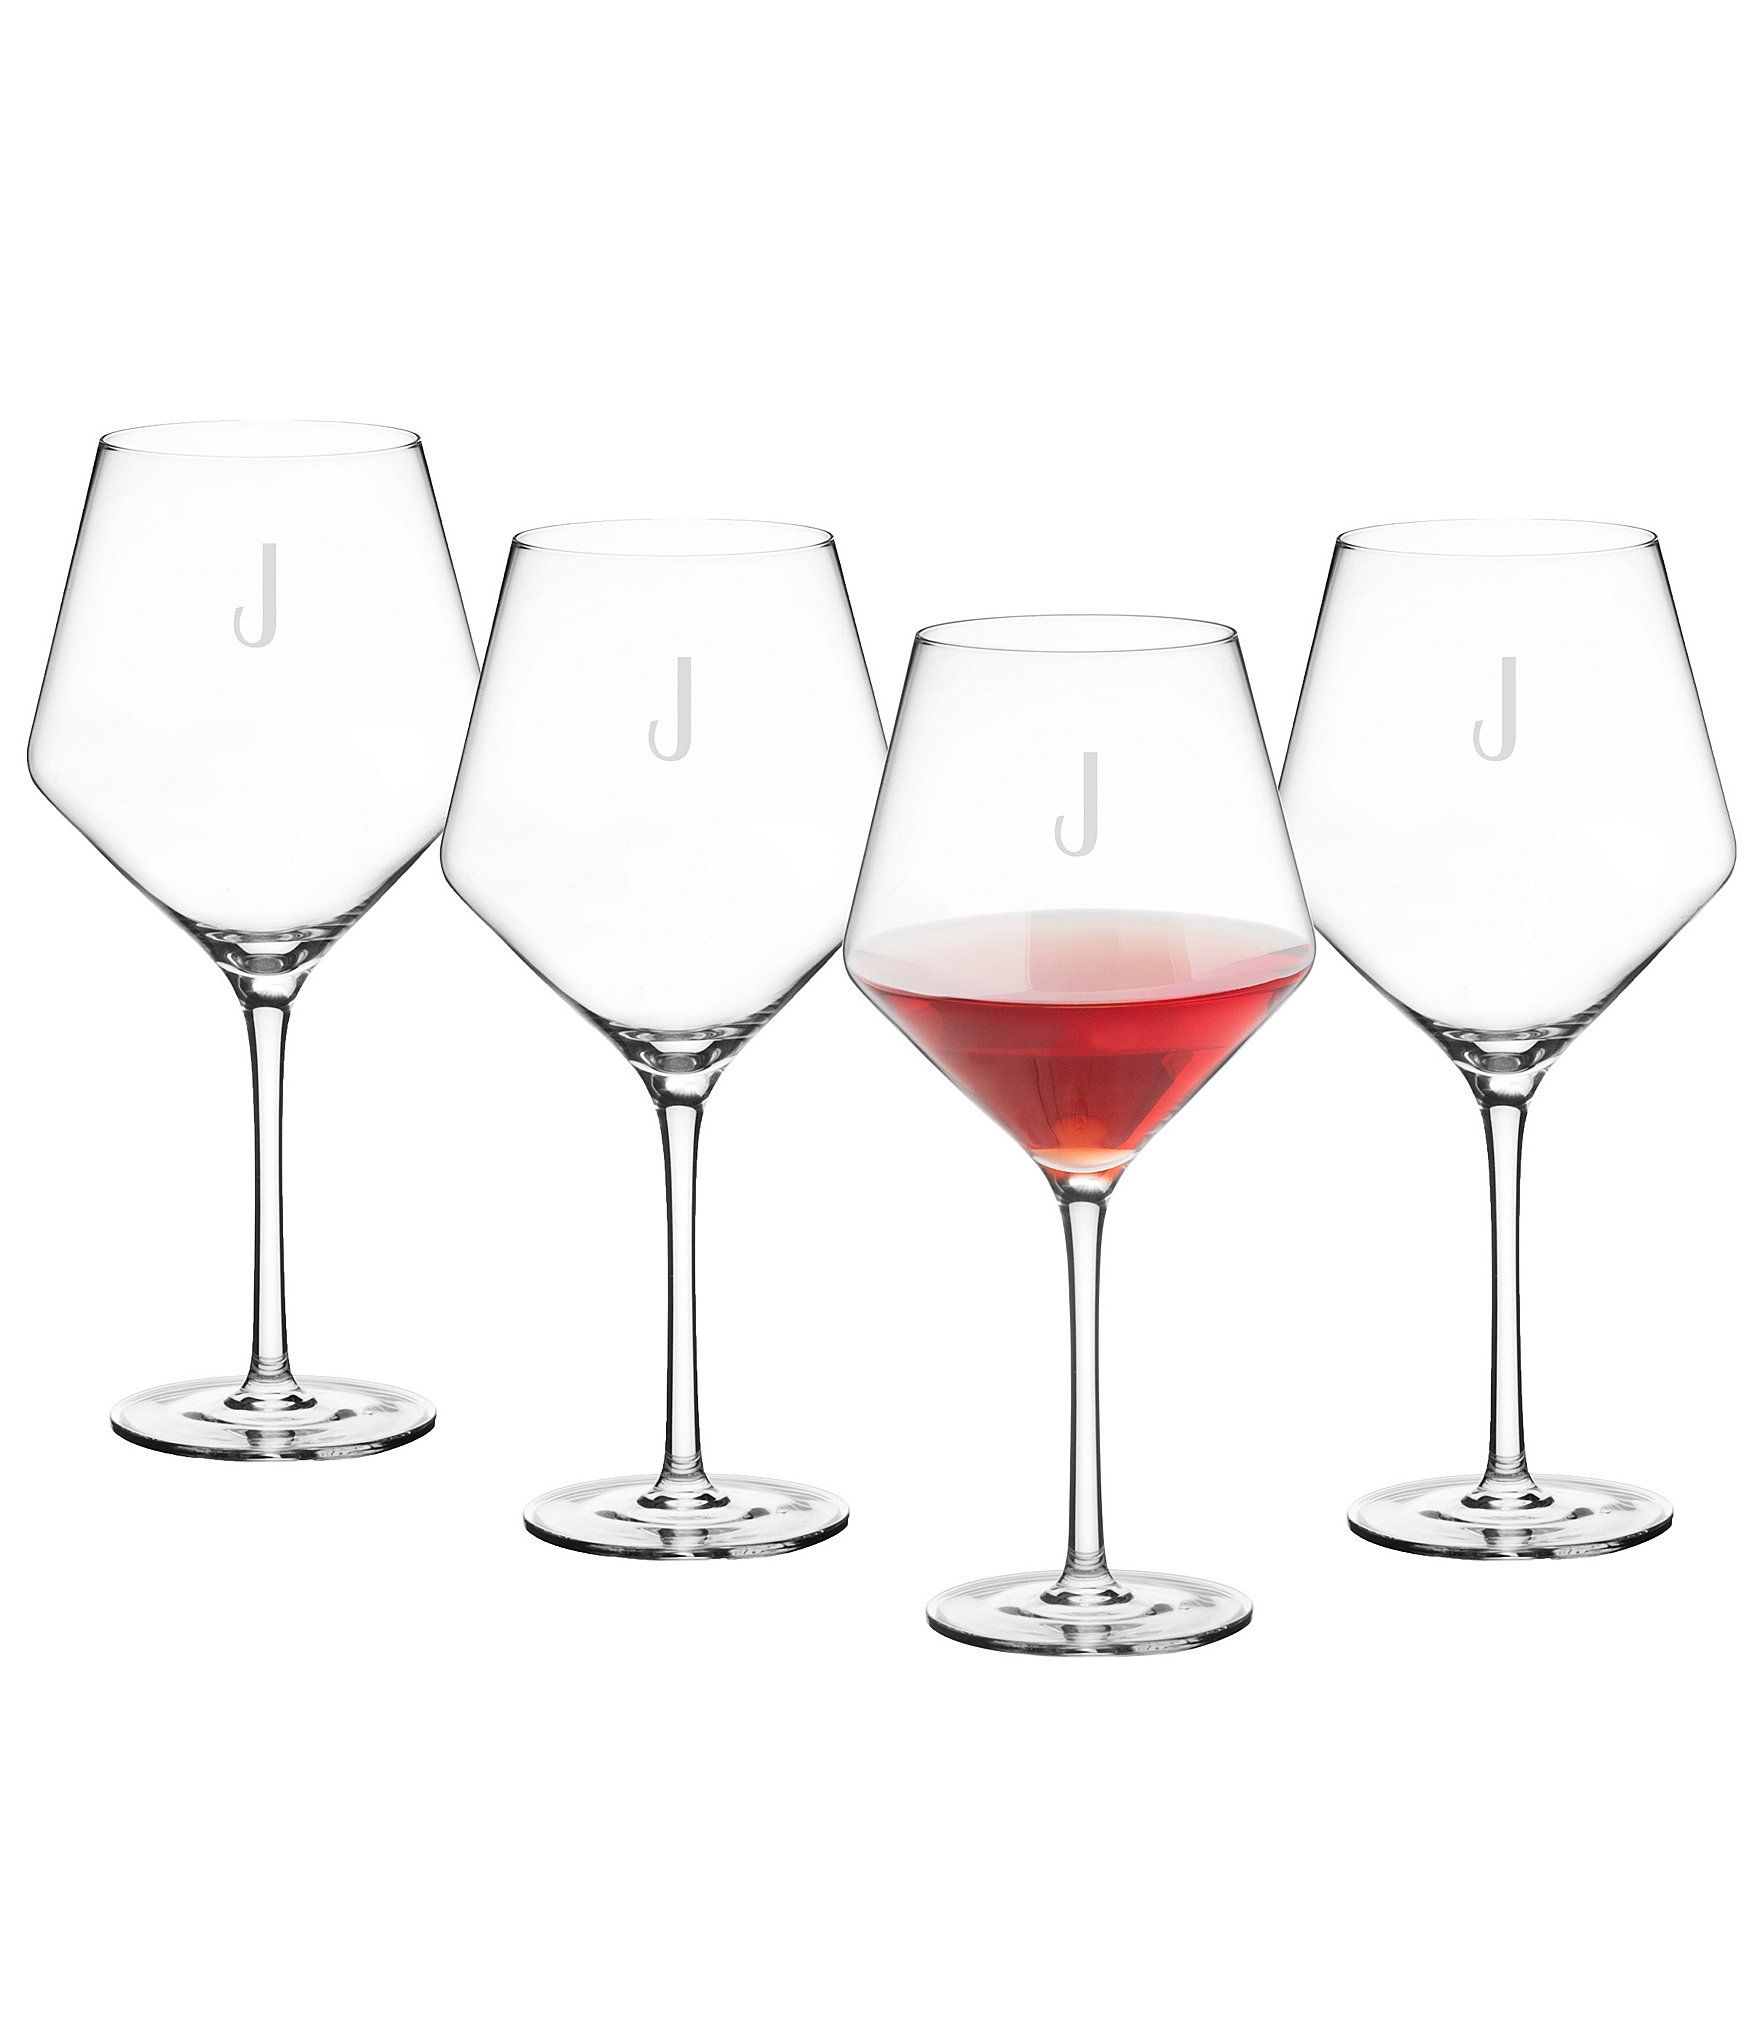 Cathy S Concepts Initial Red Wine Estate Glass Set Of 4 N A N A